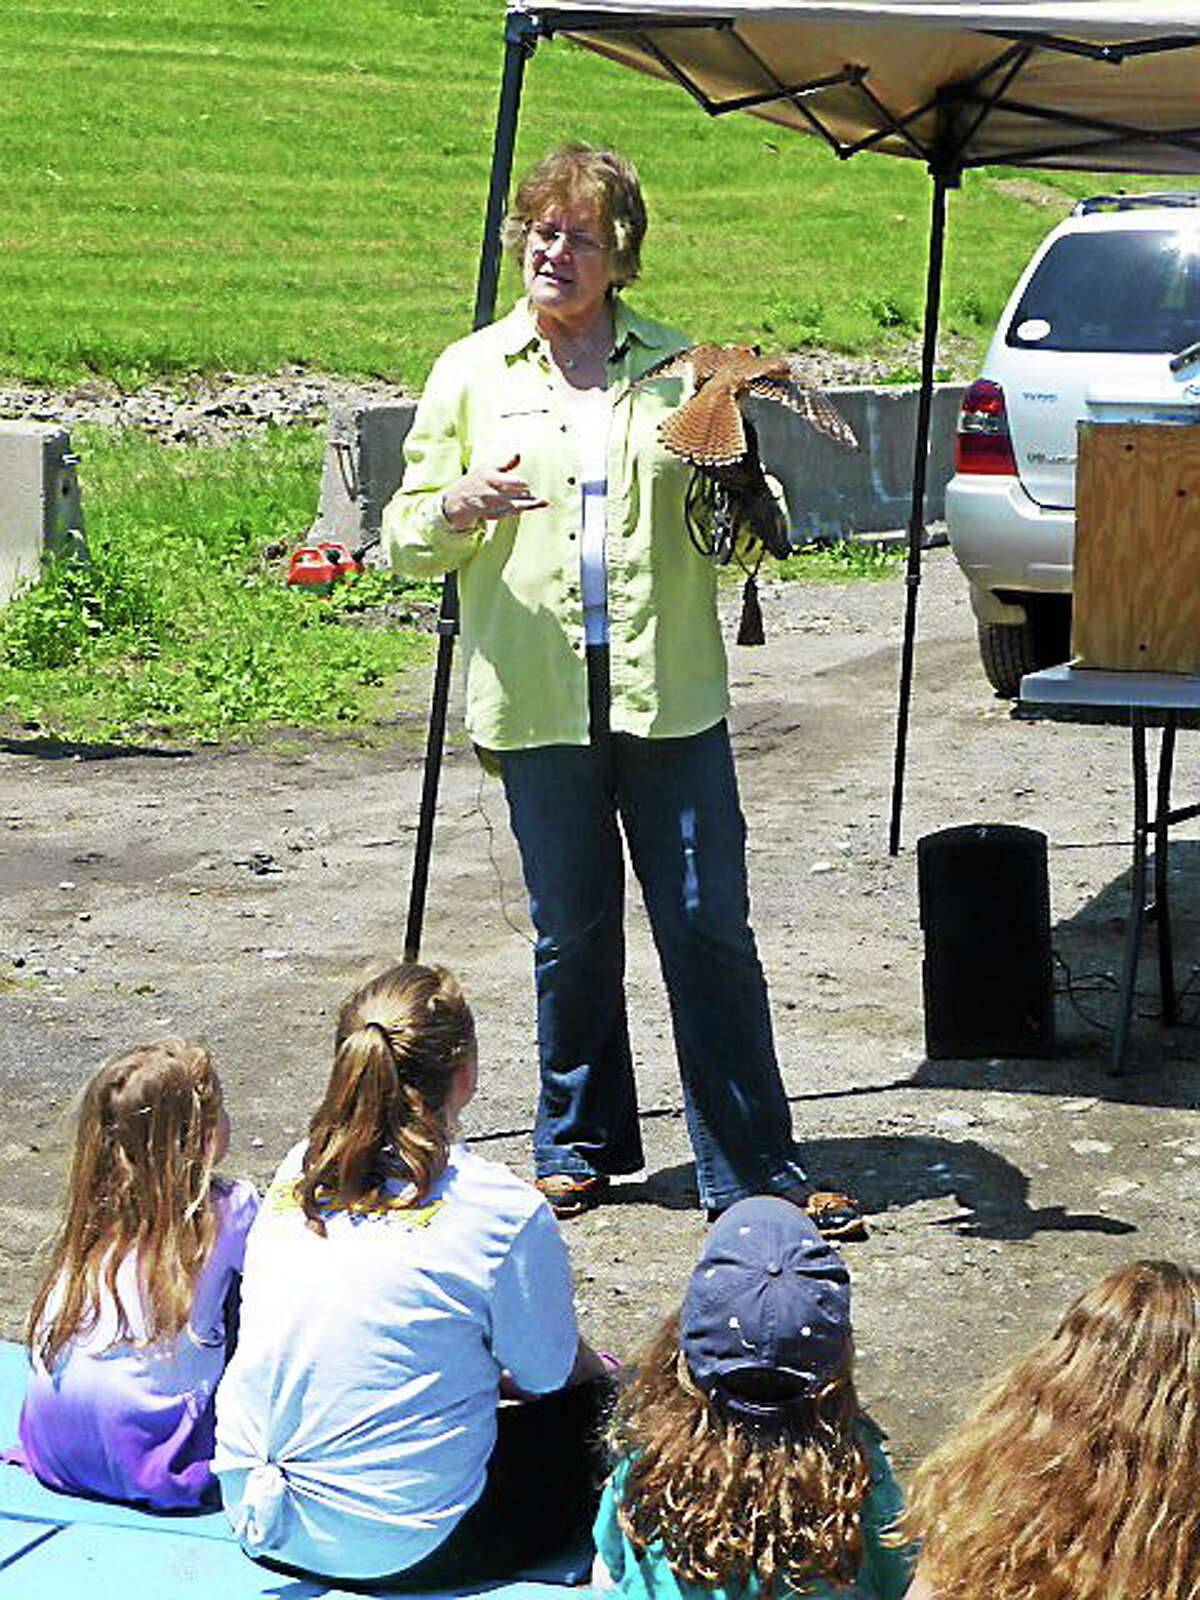 Grace Krick from A Place Called Hope, a rehabilitation center for birds of prey in Killingworth, introduces an American Kestrel to the audience Saturday at Ecofest in Derby. Patricia Villers/Register